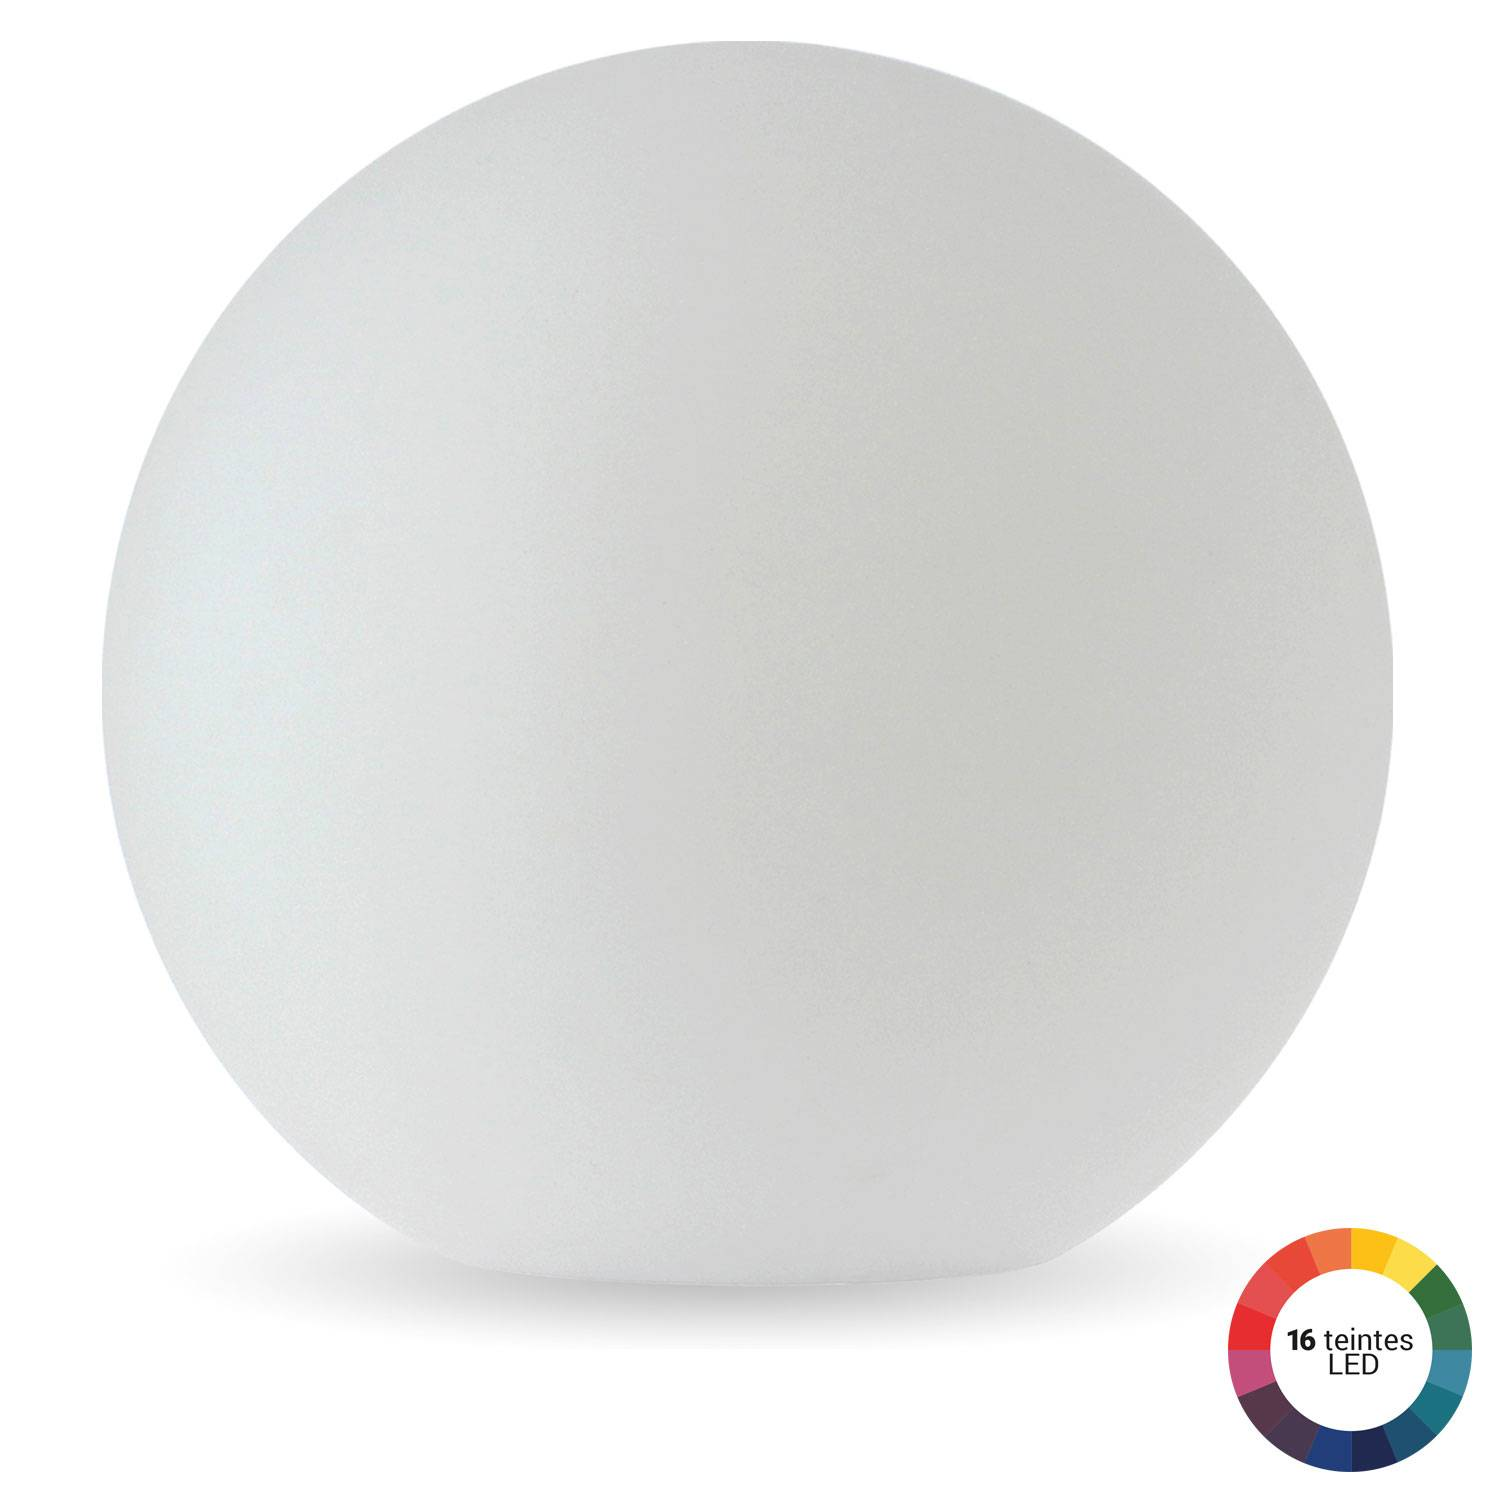 Boule lumineuse LED Ø 50cm multicolore ADHARA